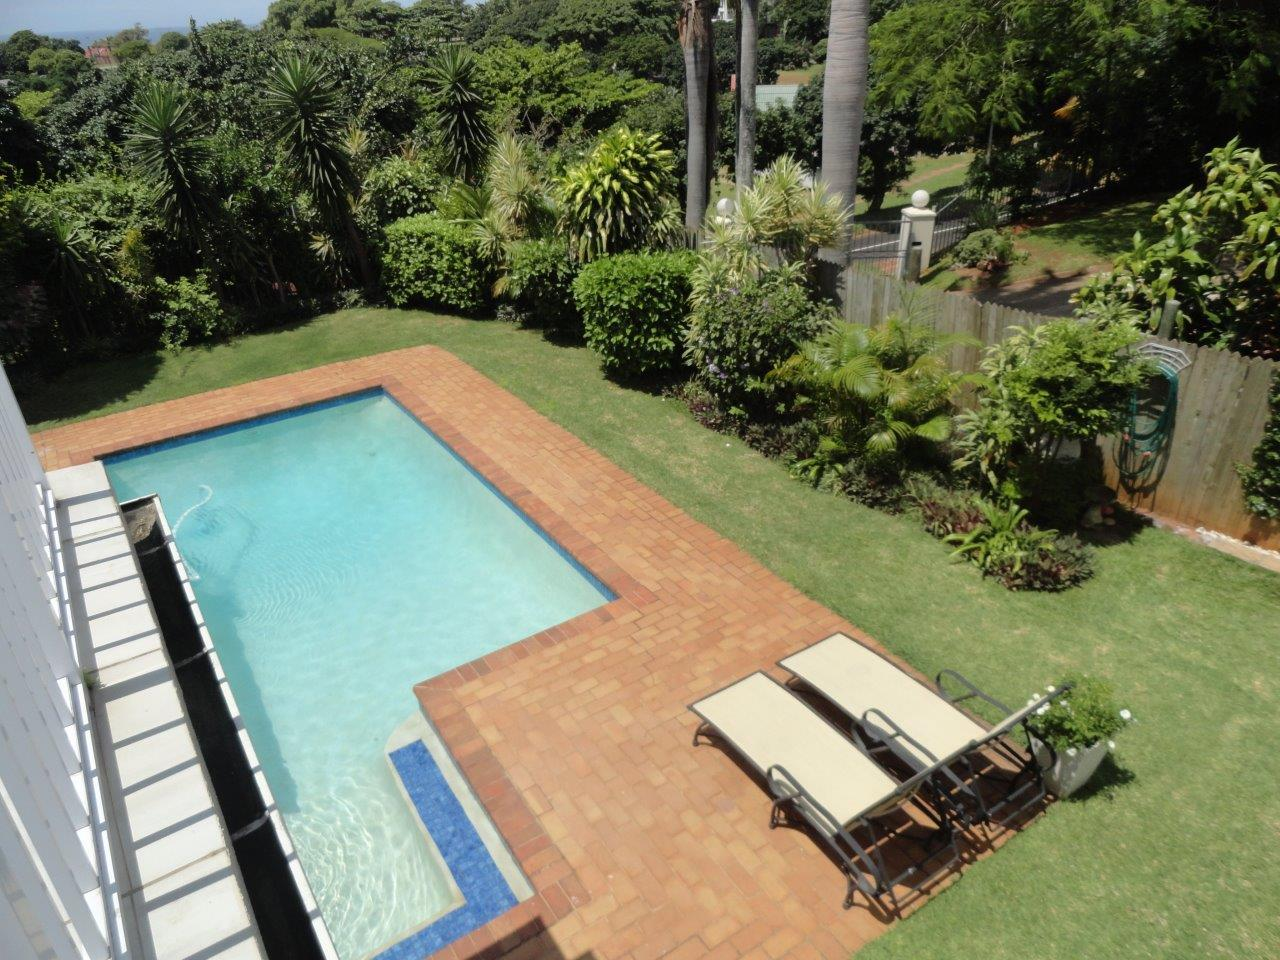 3 Bedroom House for sale in La Lucia 1802448 : photo#18